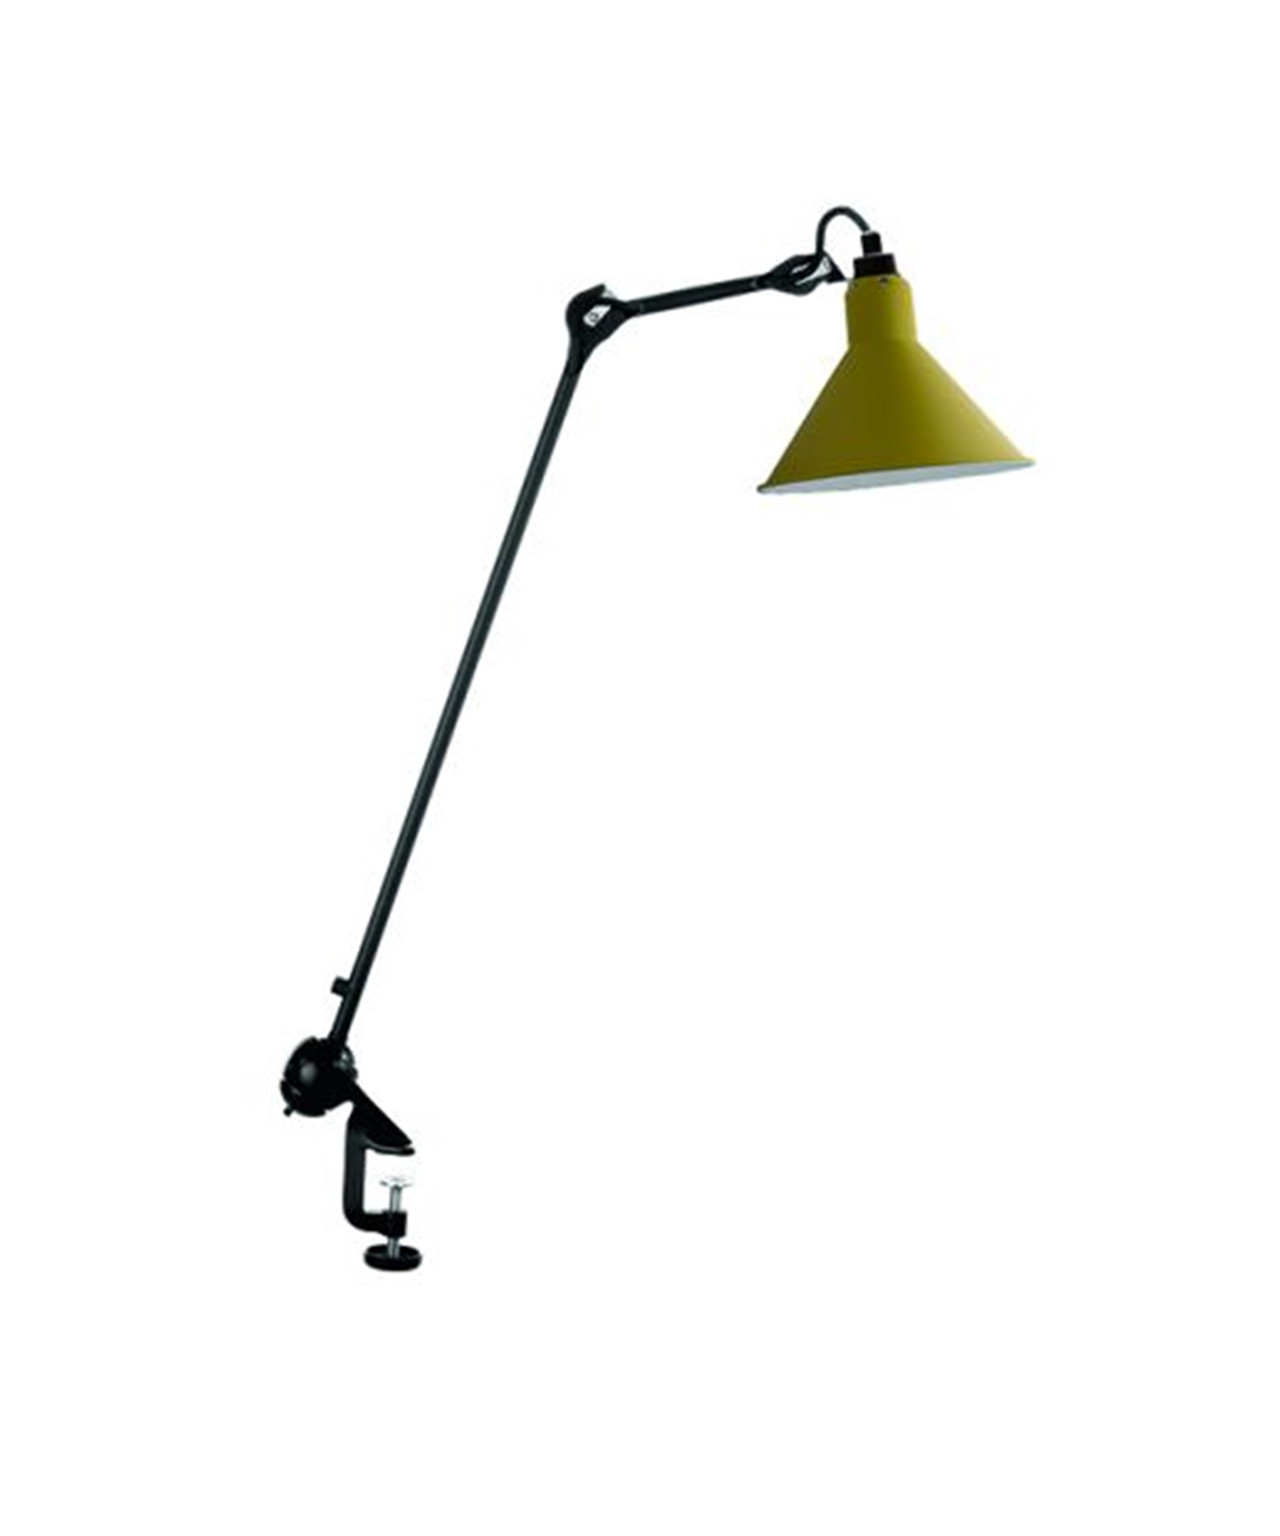 Image of   201 Bordlampe Gul - Lampe Gras